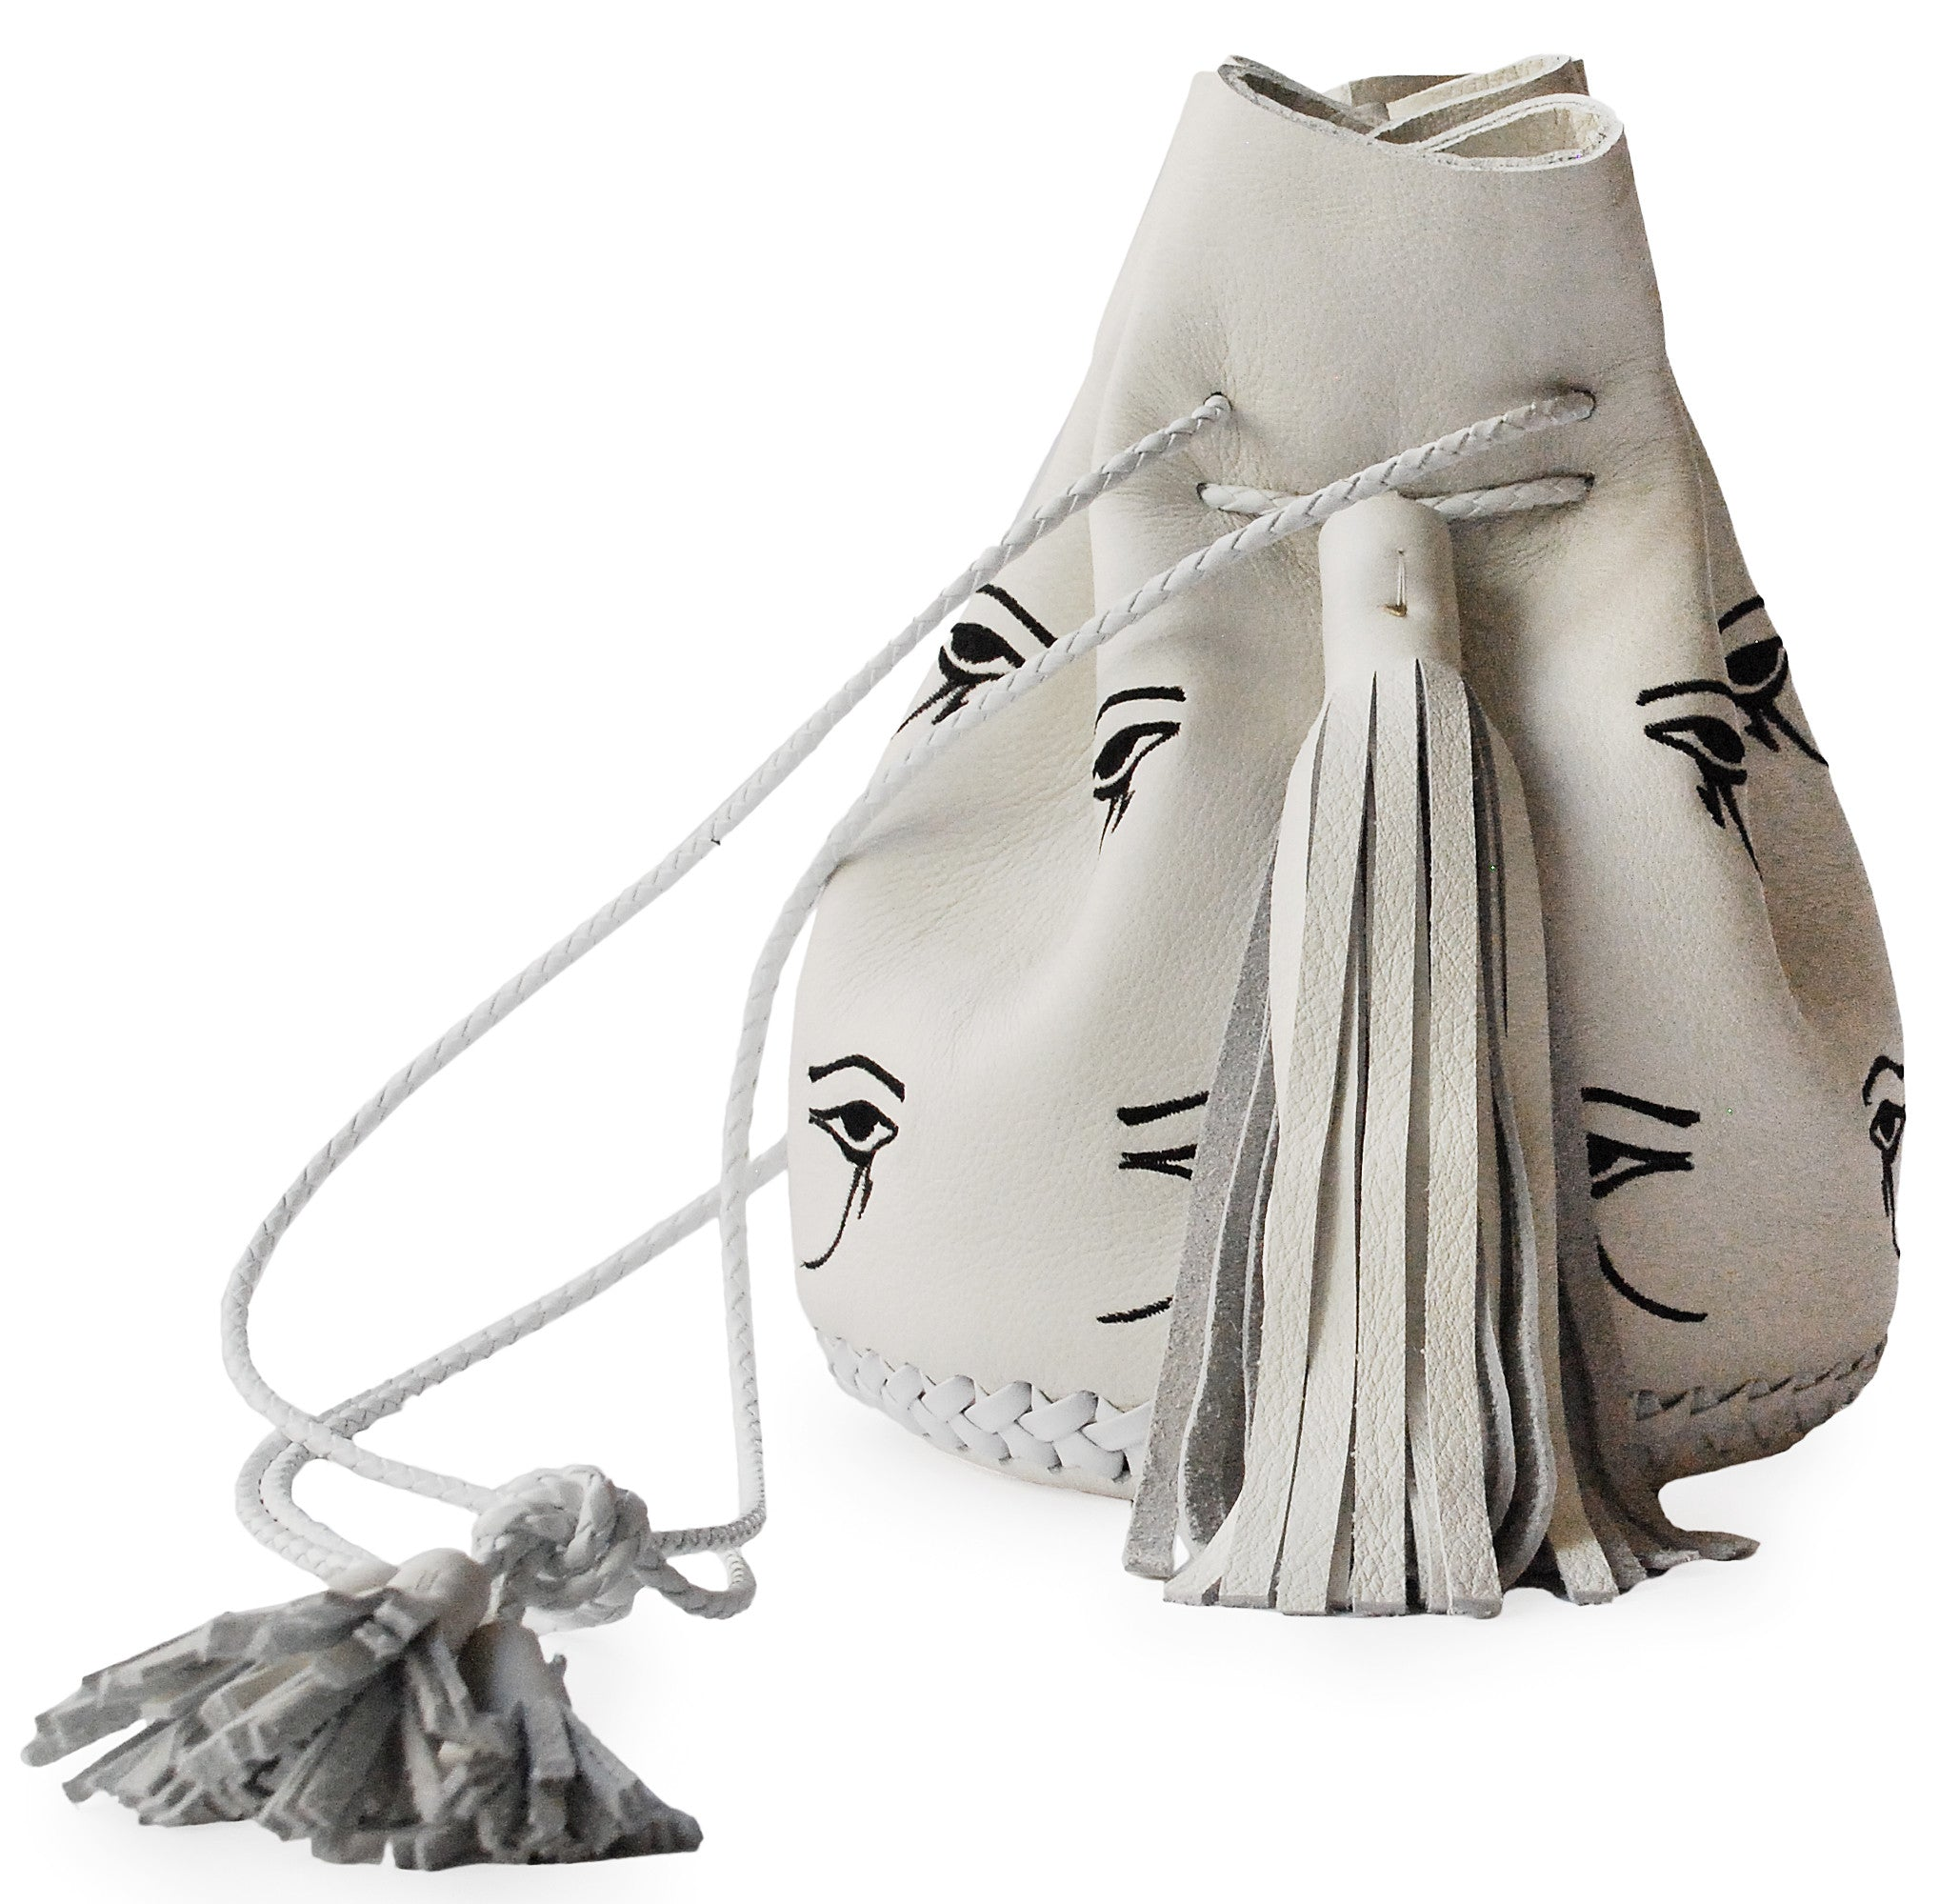 White Black Embroidered Egyptian Eye of Horus Leather Bullet Bag Wendy Nichol Handbag Purse Designer Handmade in NYC Bucket Bag